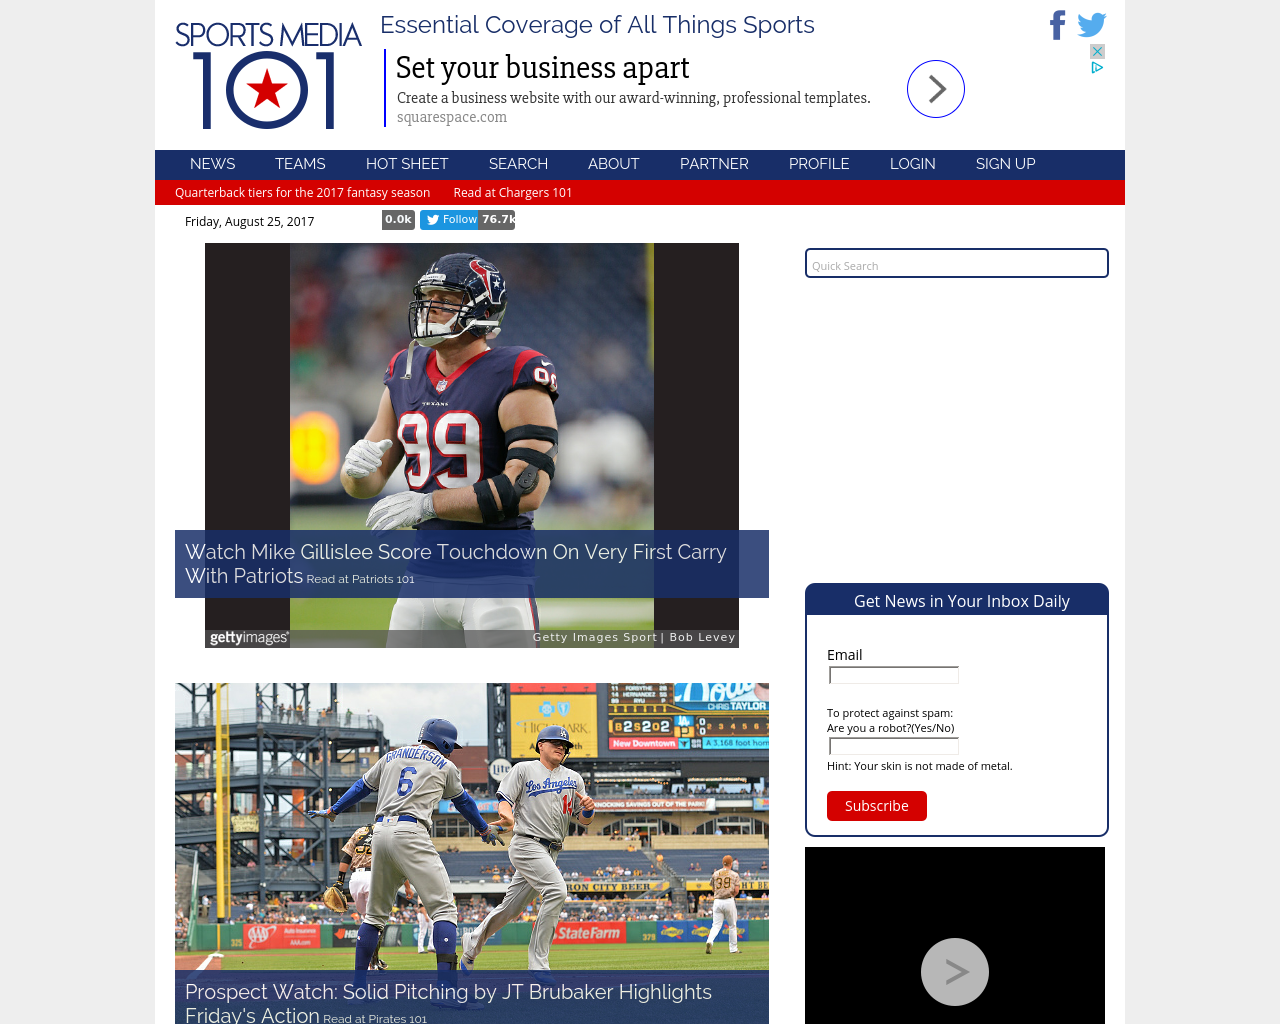 Sports-Media-101-Advertising-Reviews-Pricing